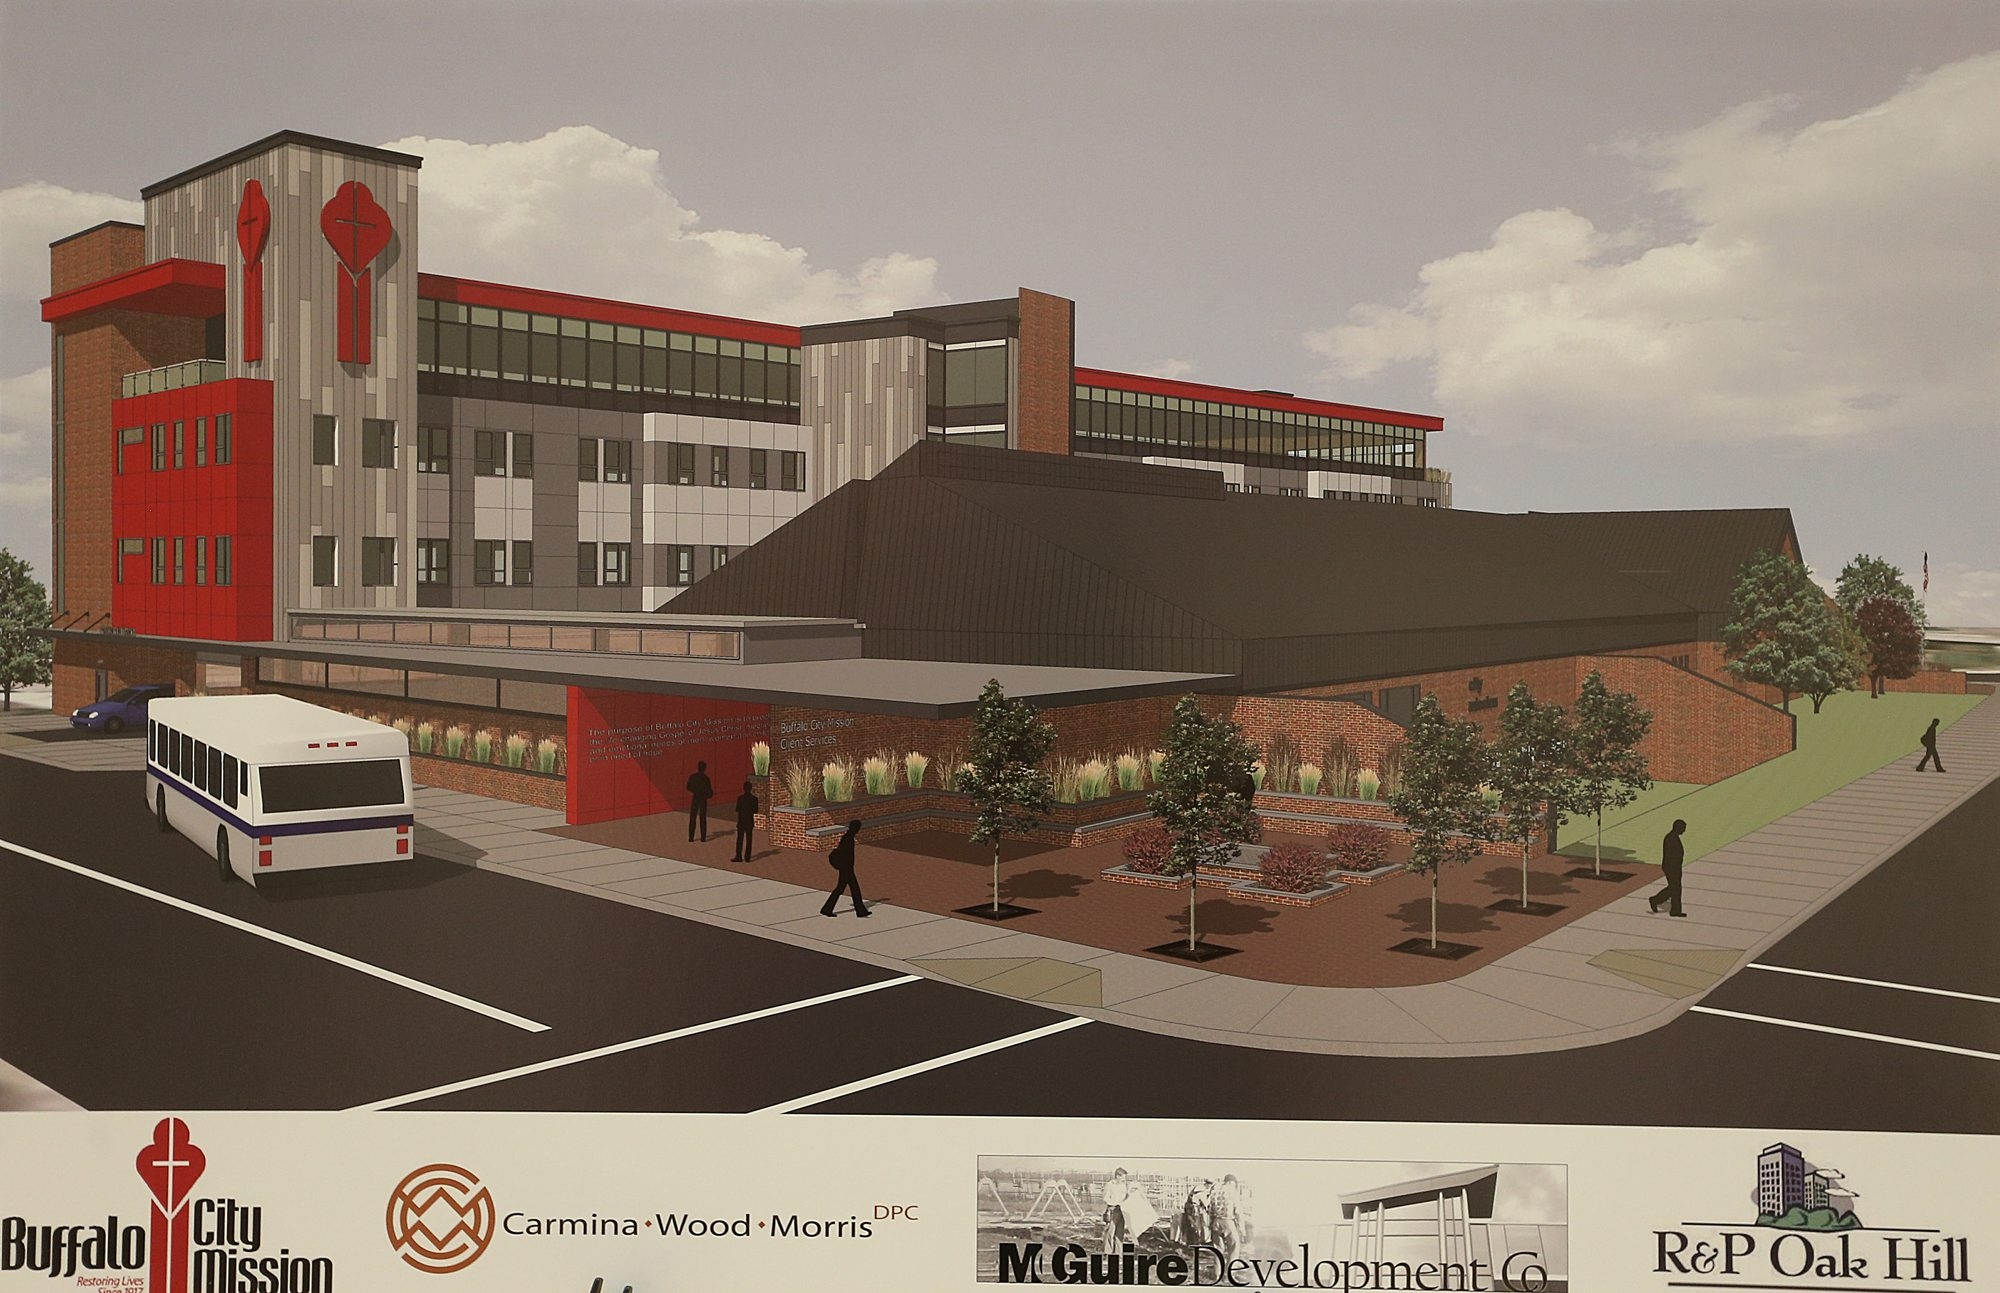 An artist's rendering of the proposed expansion of the Buffalo City Mission shows housing units on the current parking lot.